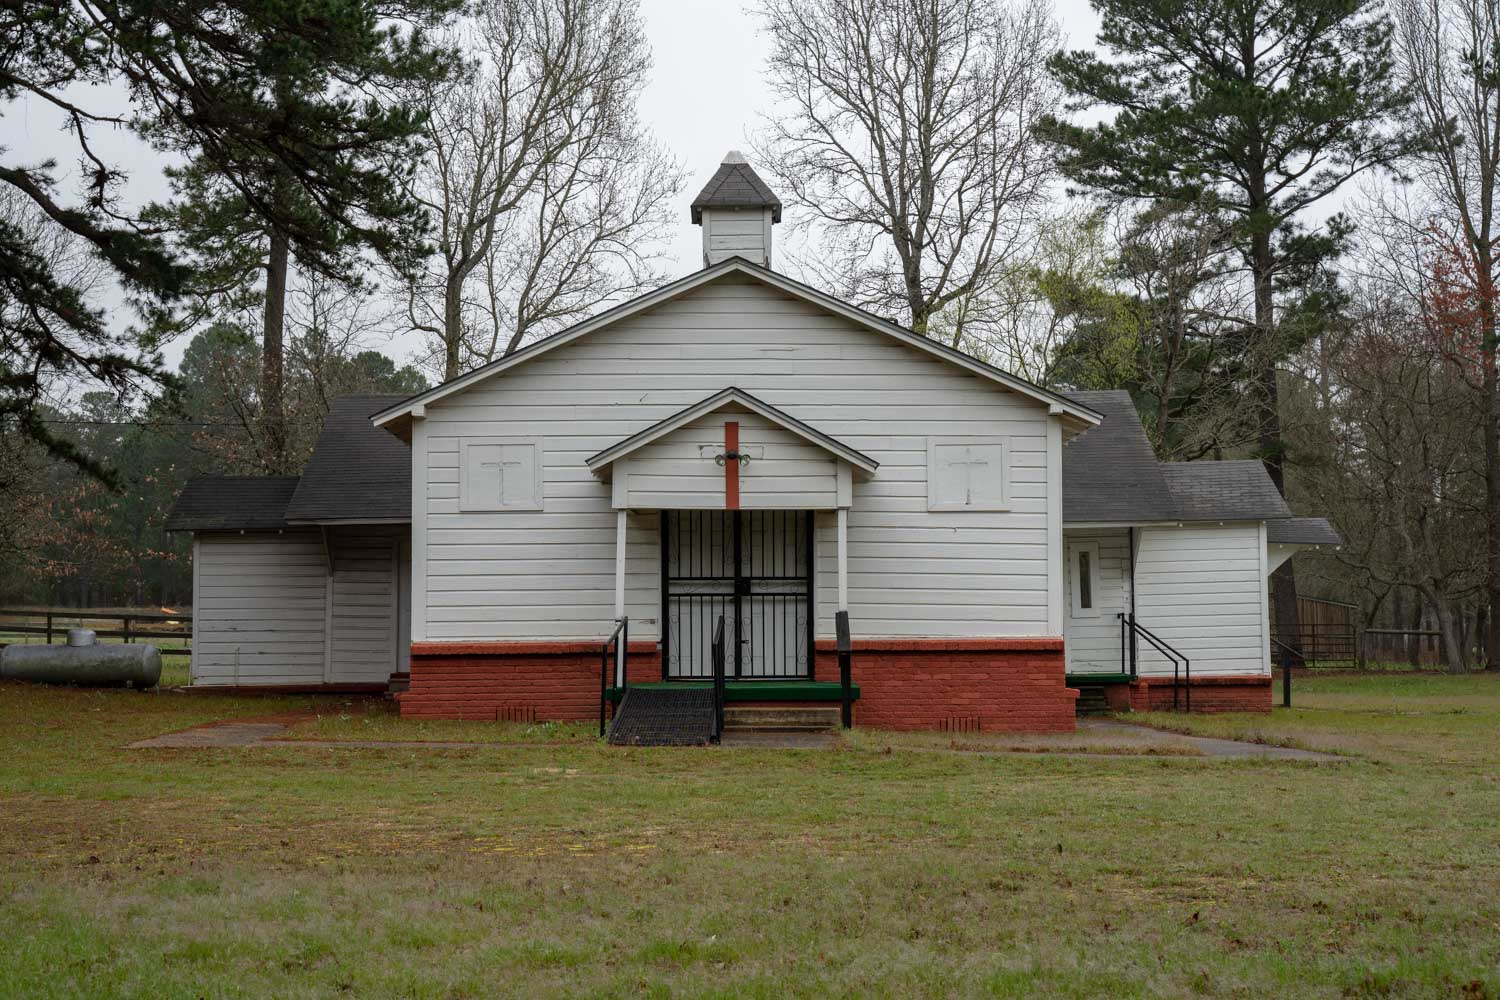 Harmonia Baptist Church